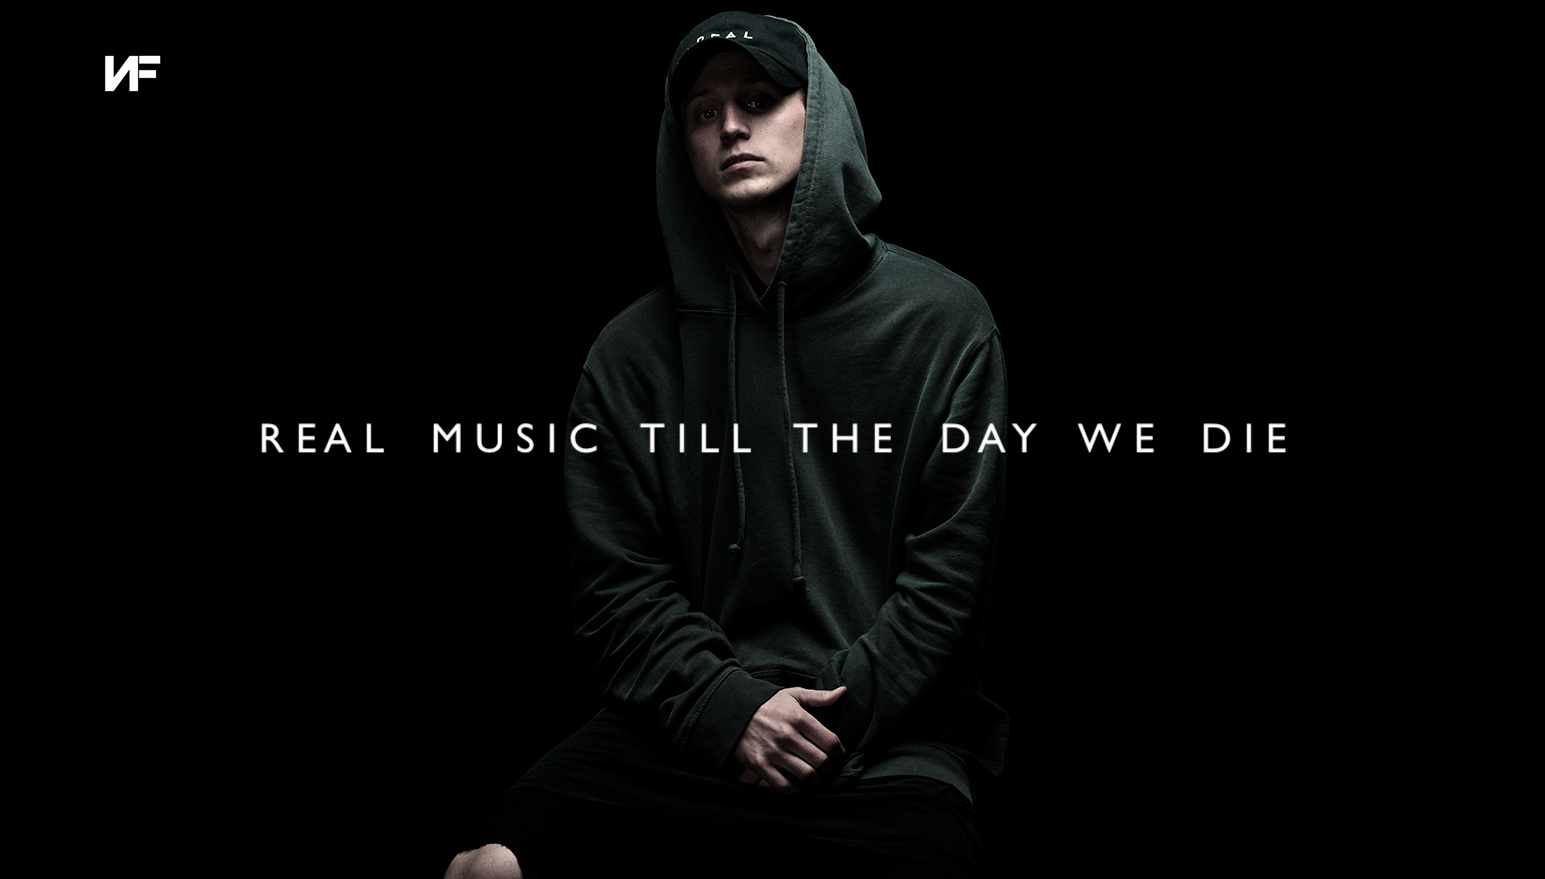 Nf Rapper Wallpapers Top Free Nf Rapper Backgrounds Wallpaperaccess